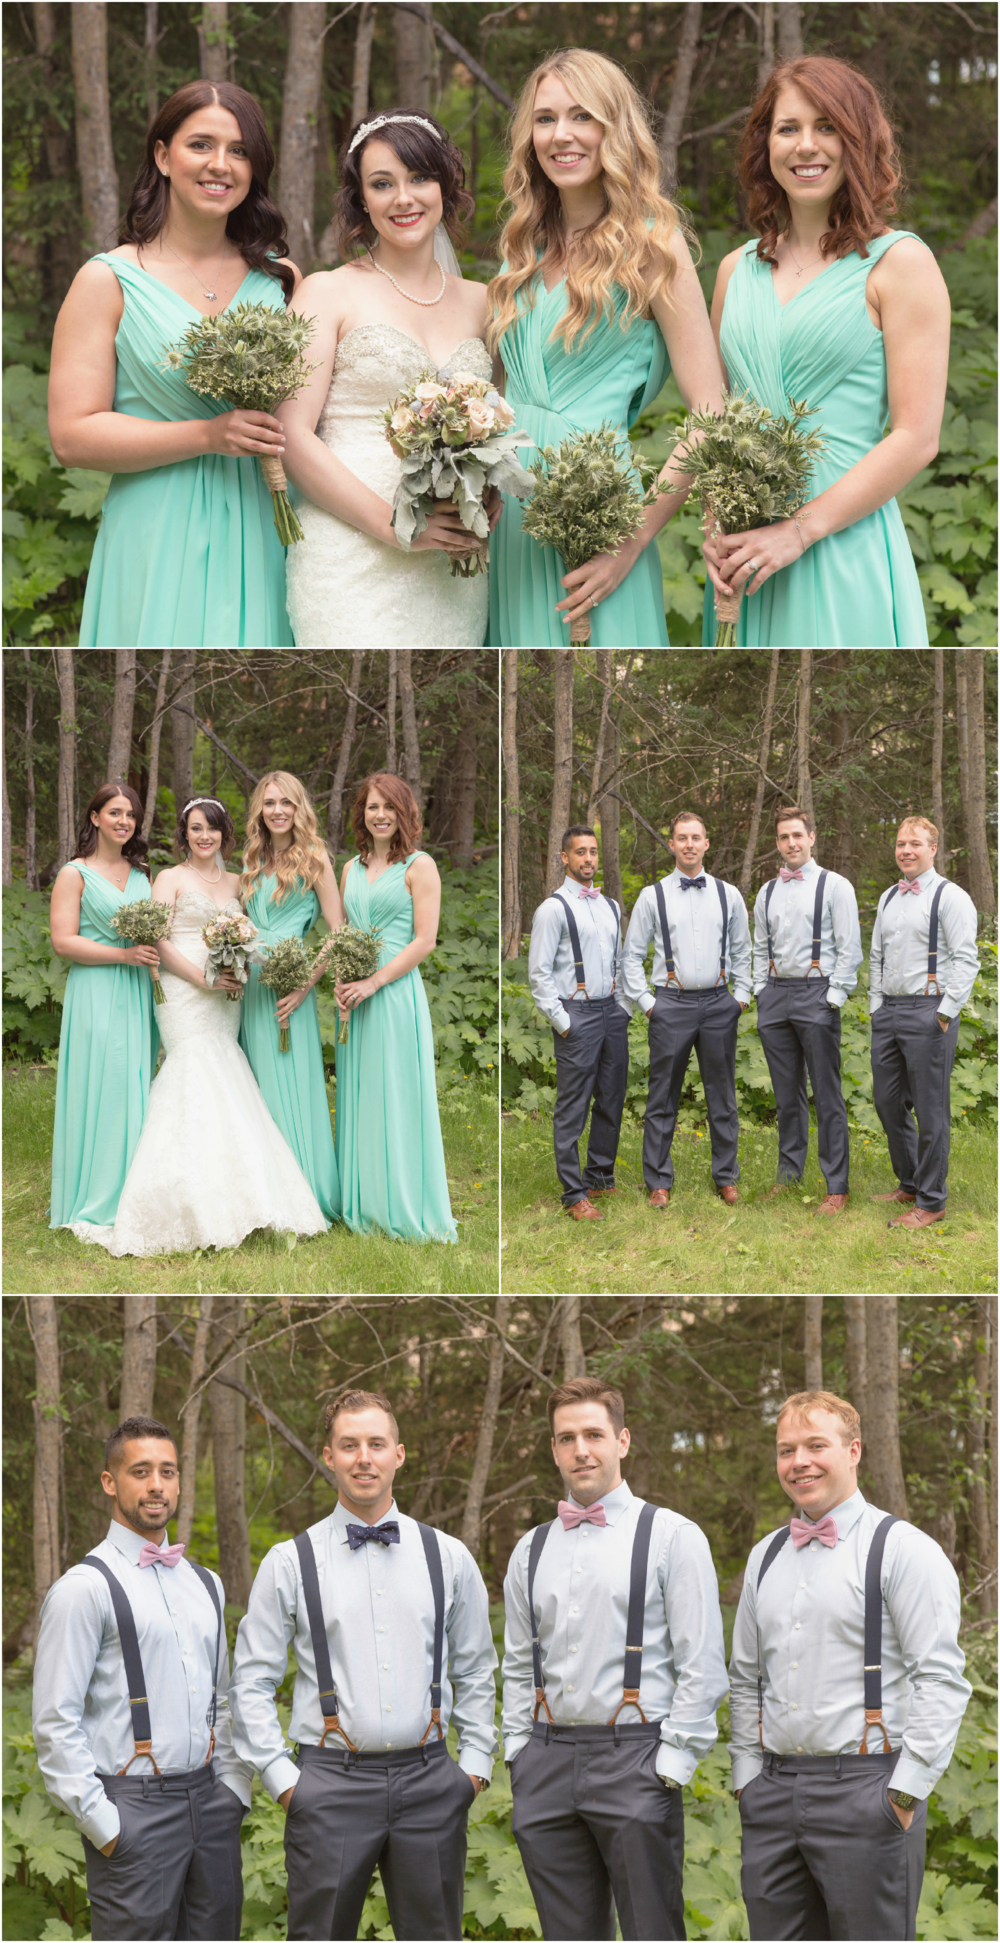 elkwater_wedding_photography_22.png